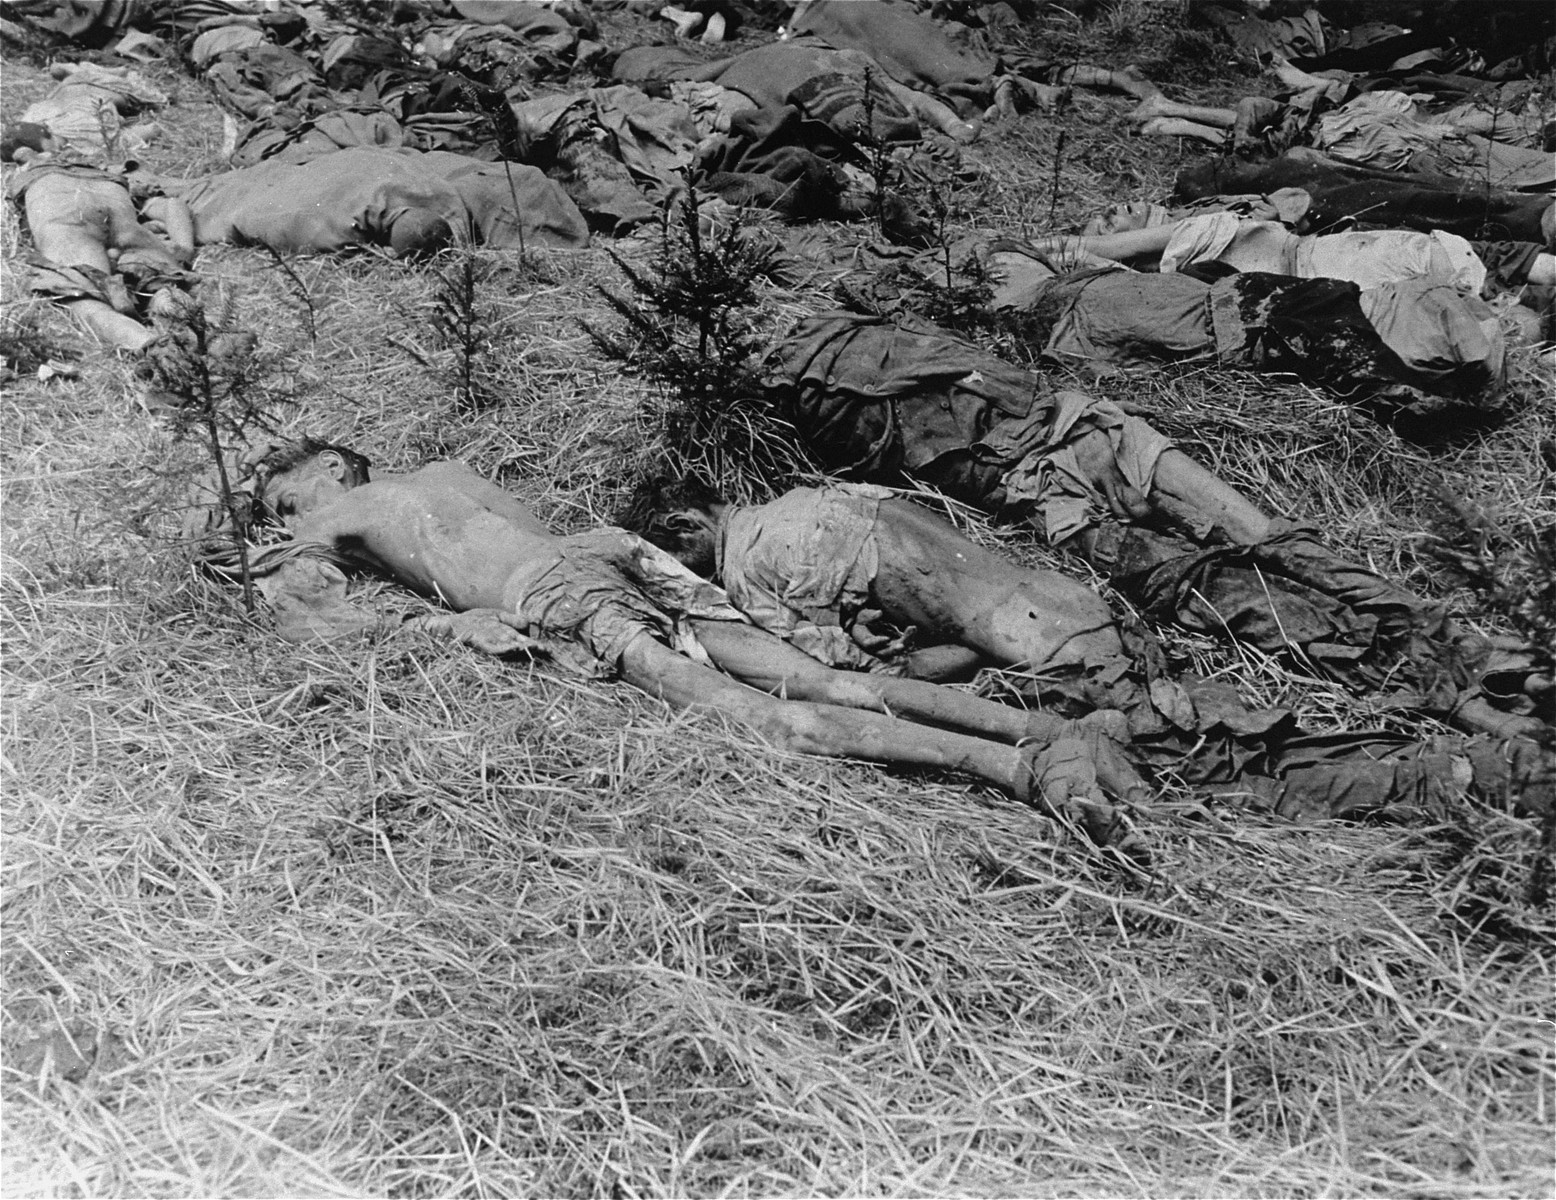 Corpses found in the Gunskirchen concentration camp at the time of its liberation by American troops.